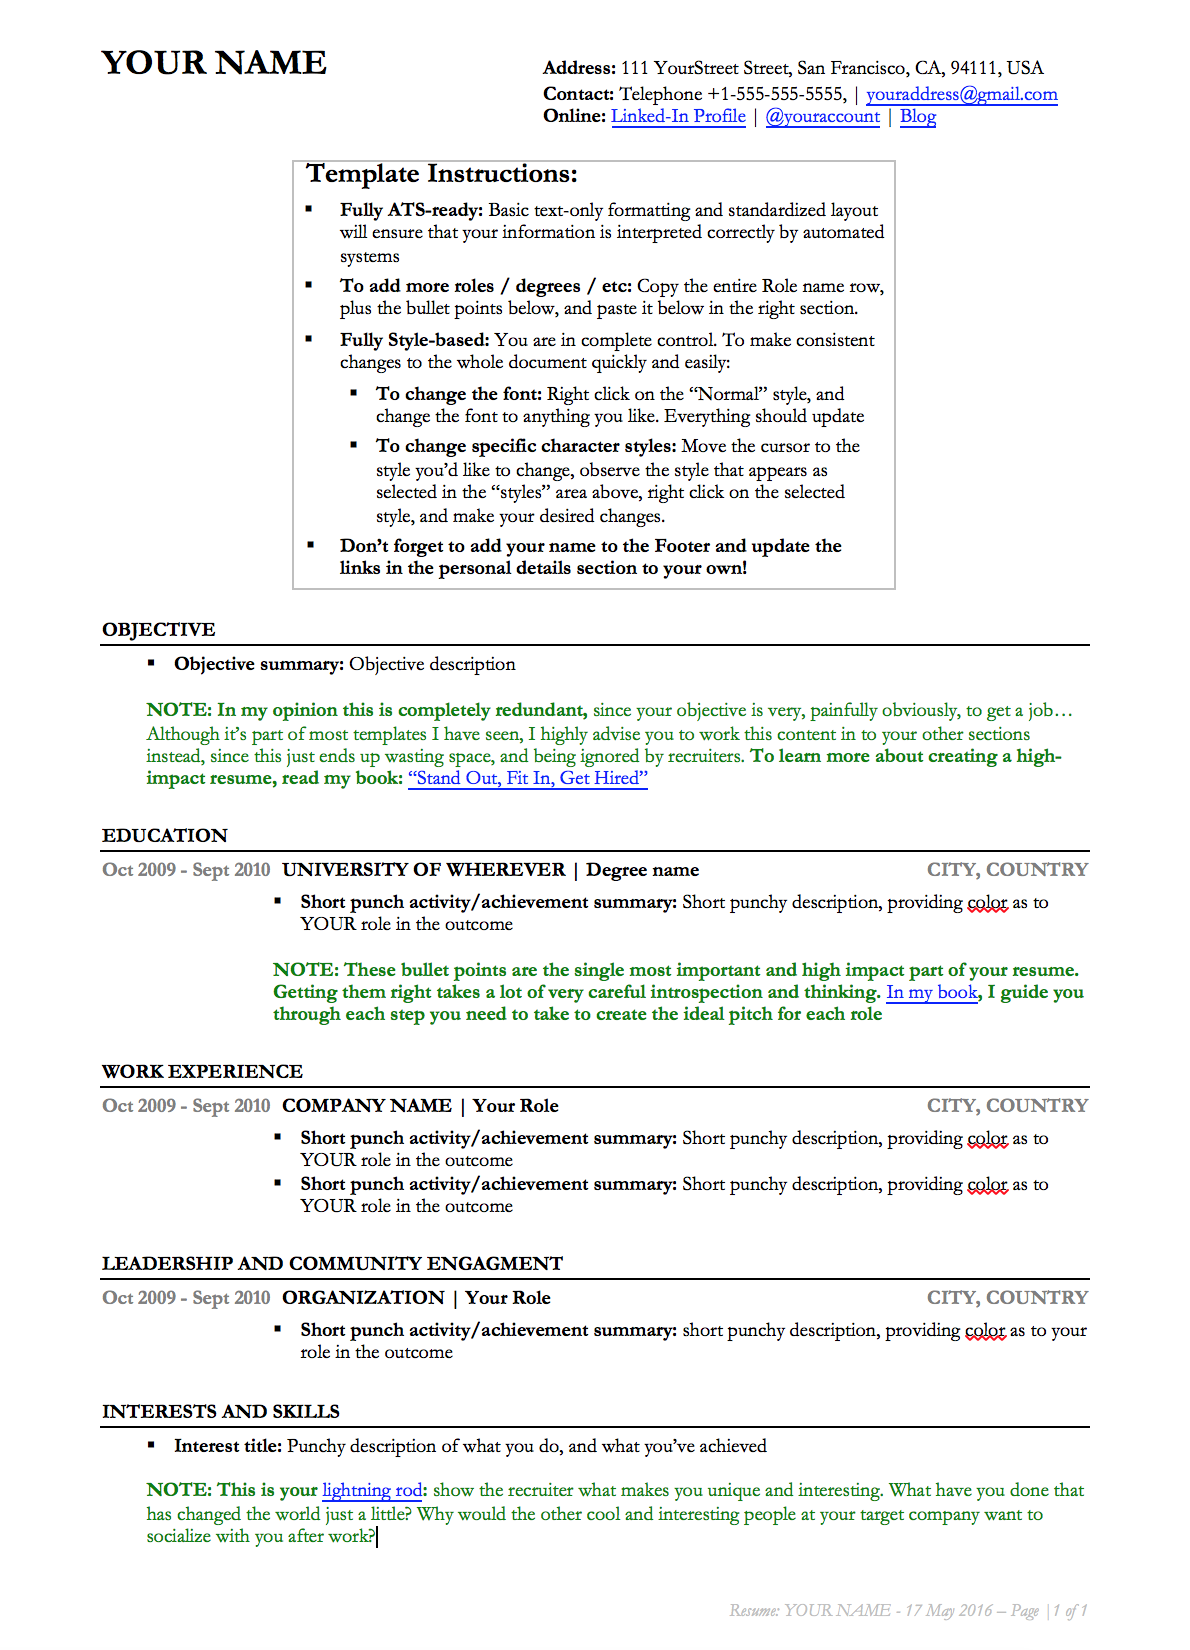 Download And Use This Resume Template Link